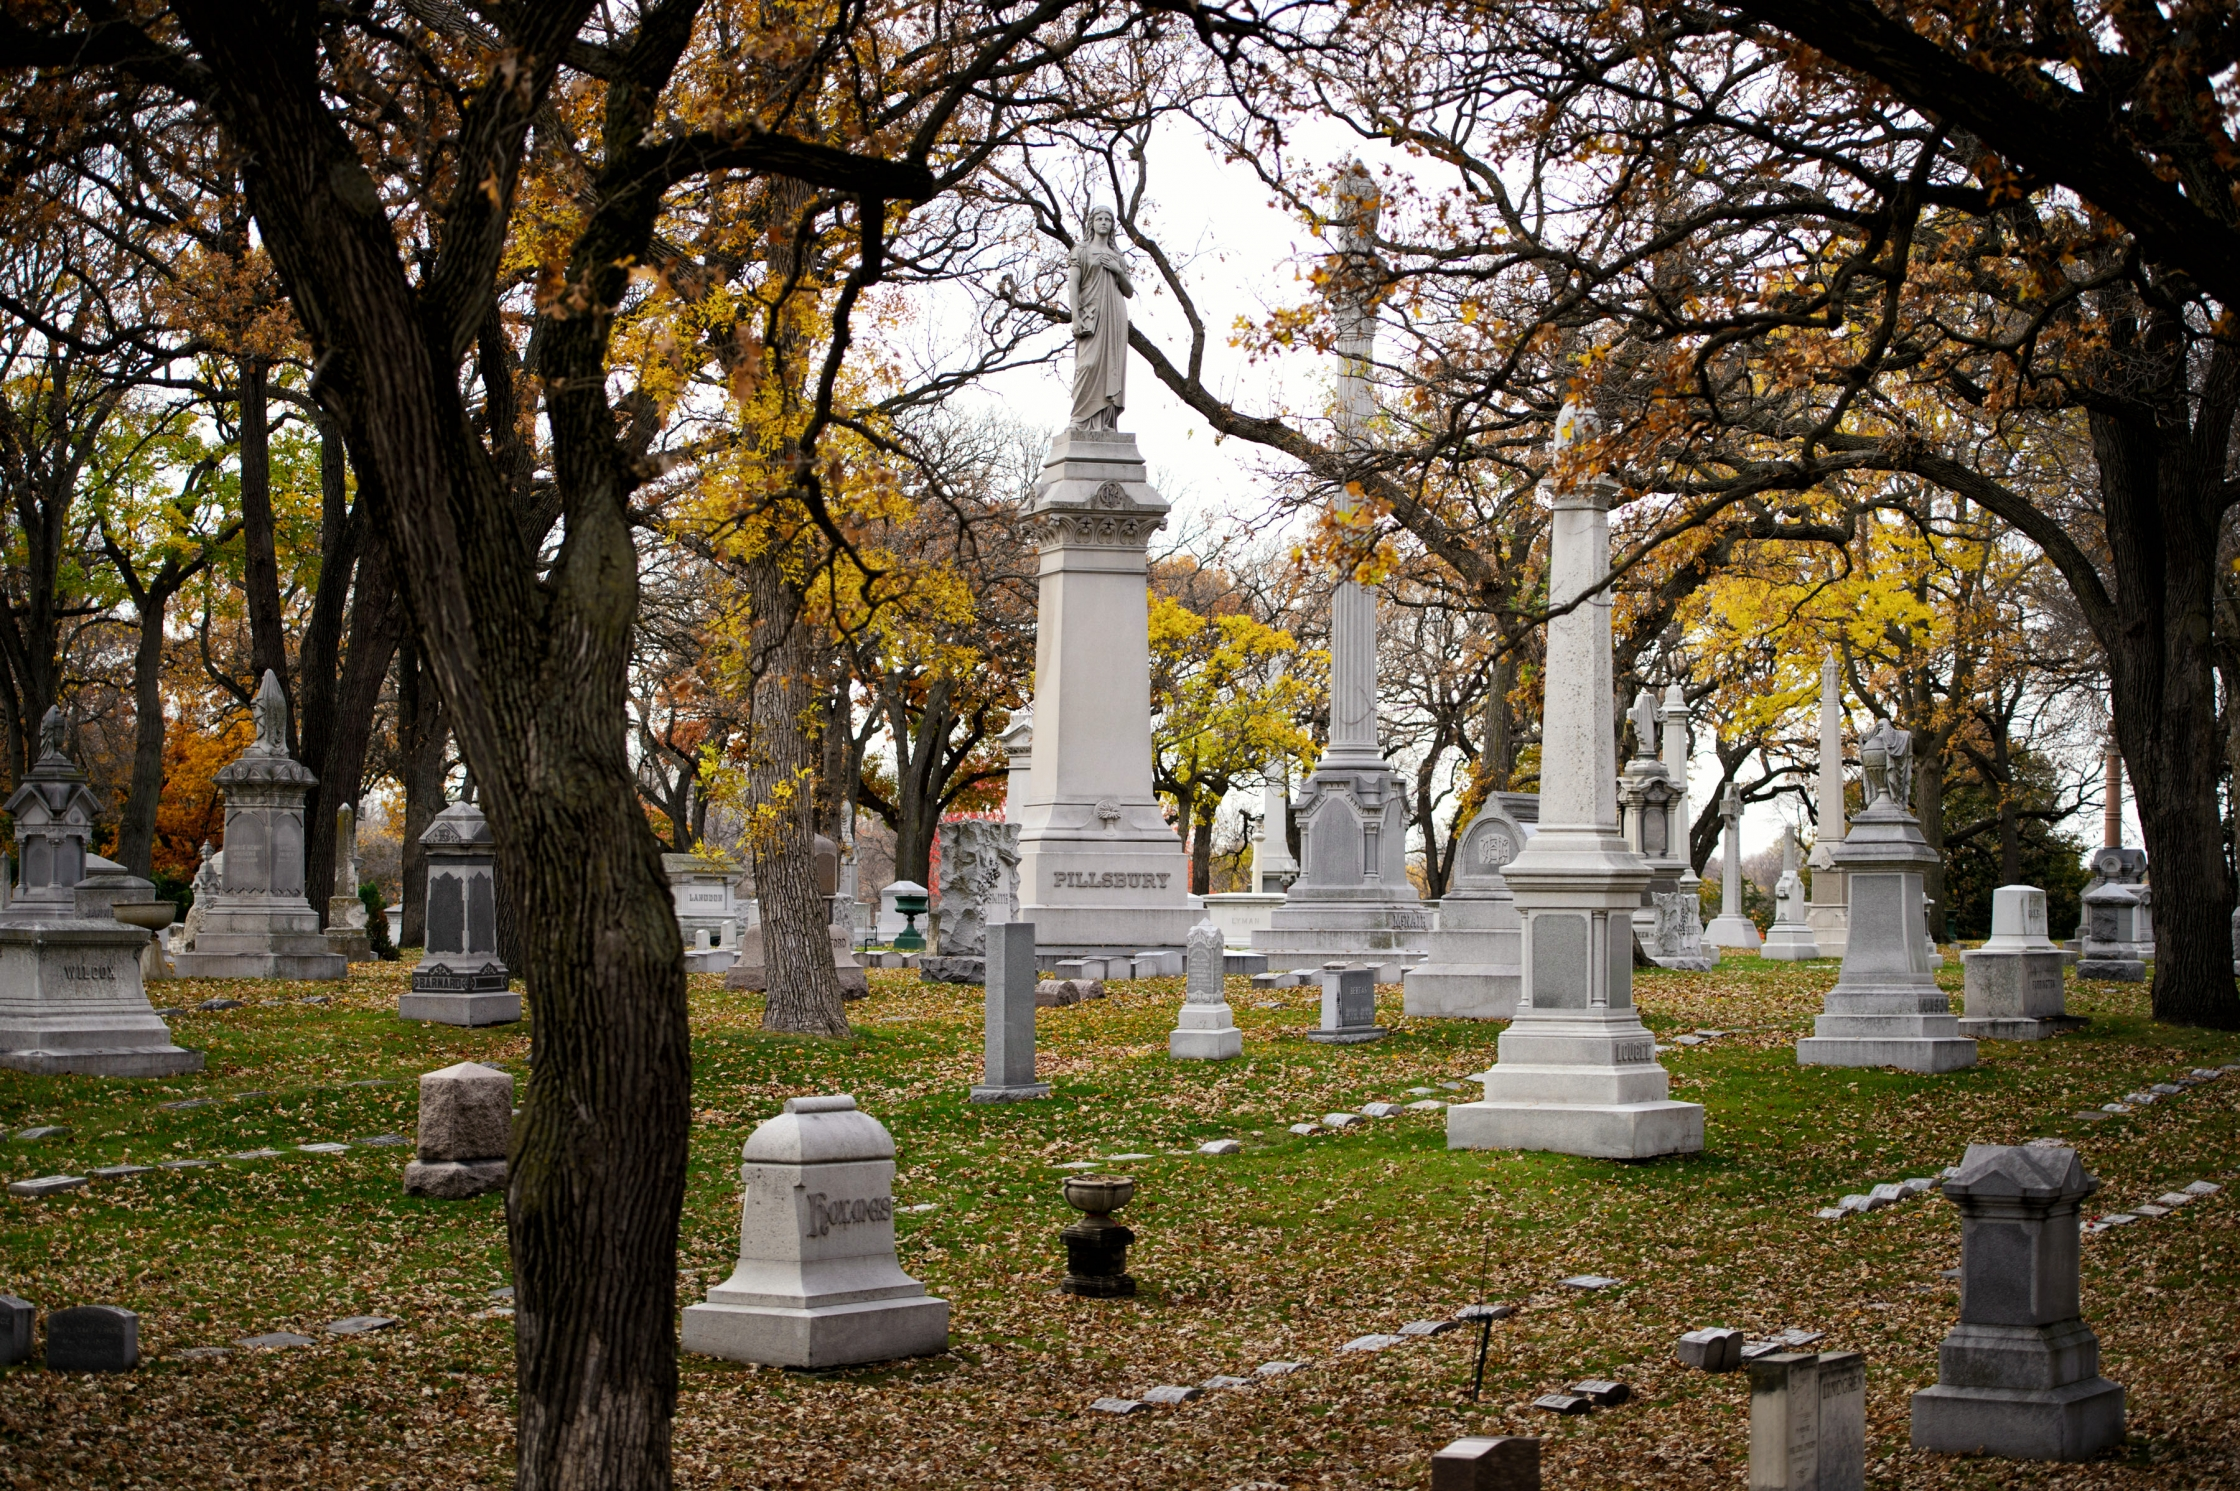 Photos: As cities grow, cemeteries become part of urban landscape ...